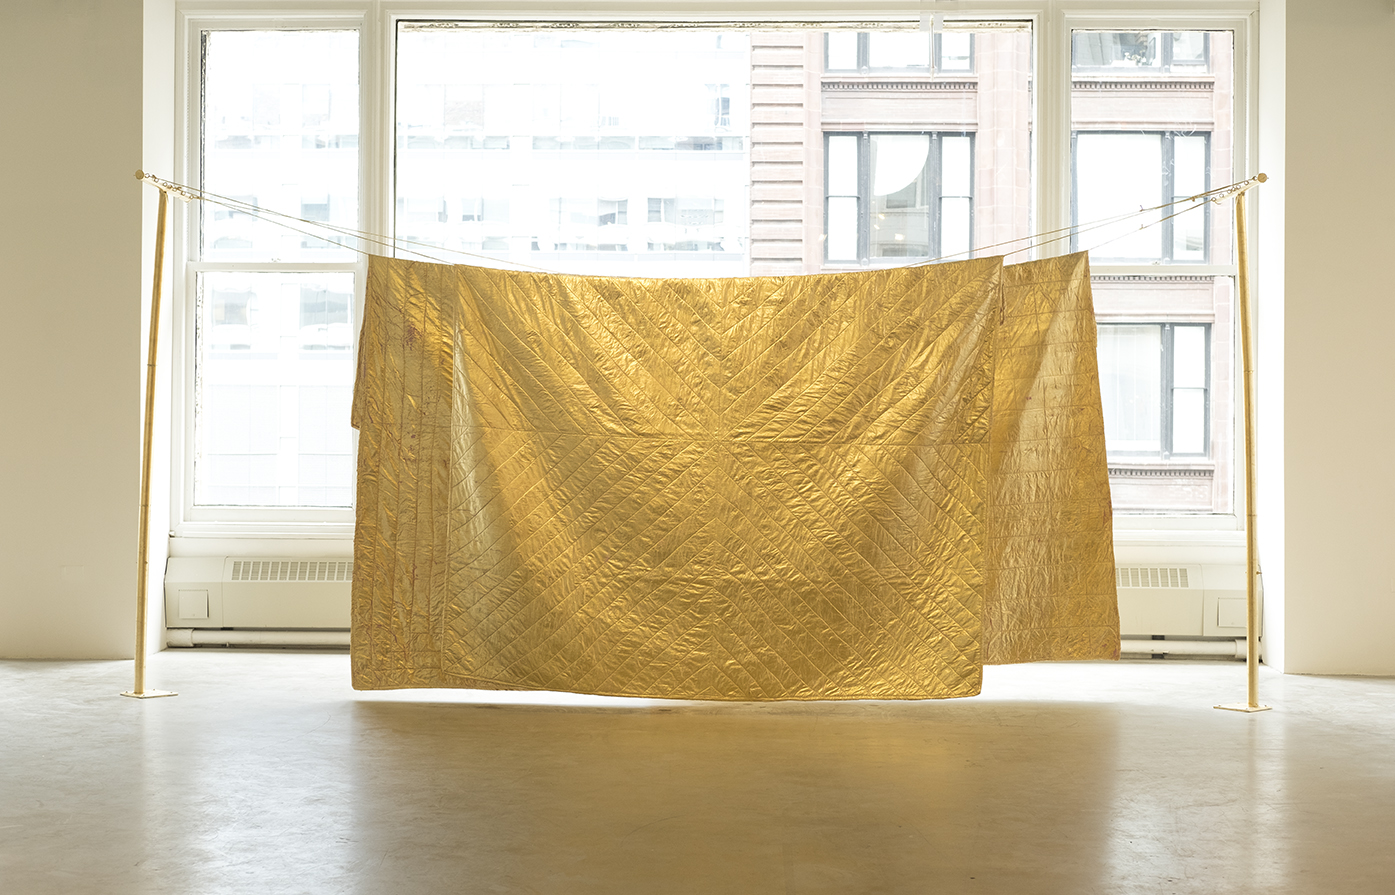 Three gold leafed, machine sewn, hand dyed quilts. Three lengths of gold leafed cotton clotheslines rope. Two gold leafed galvanized steel clothesline poles.